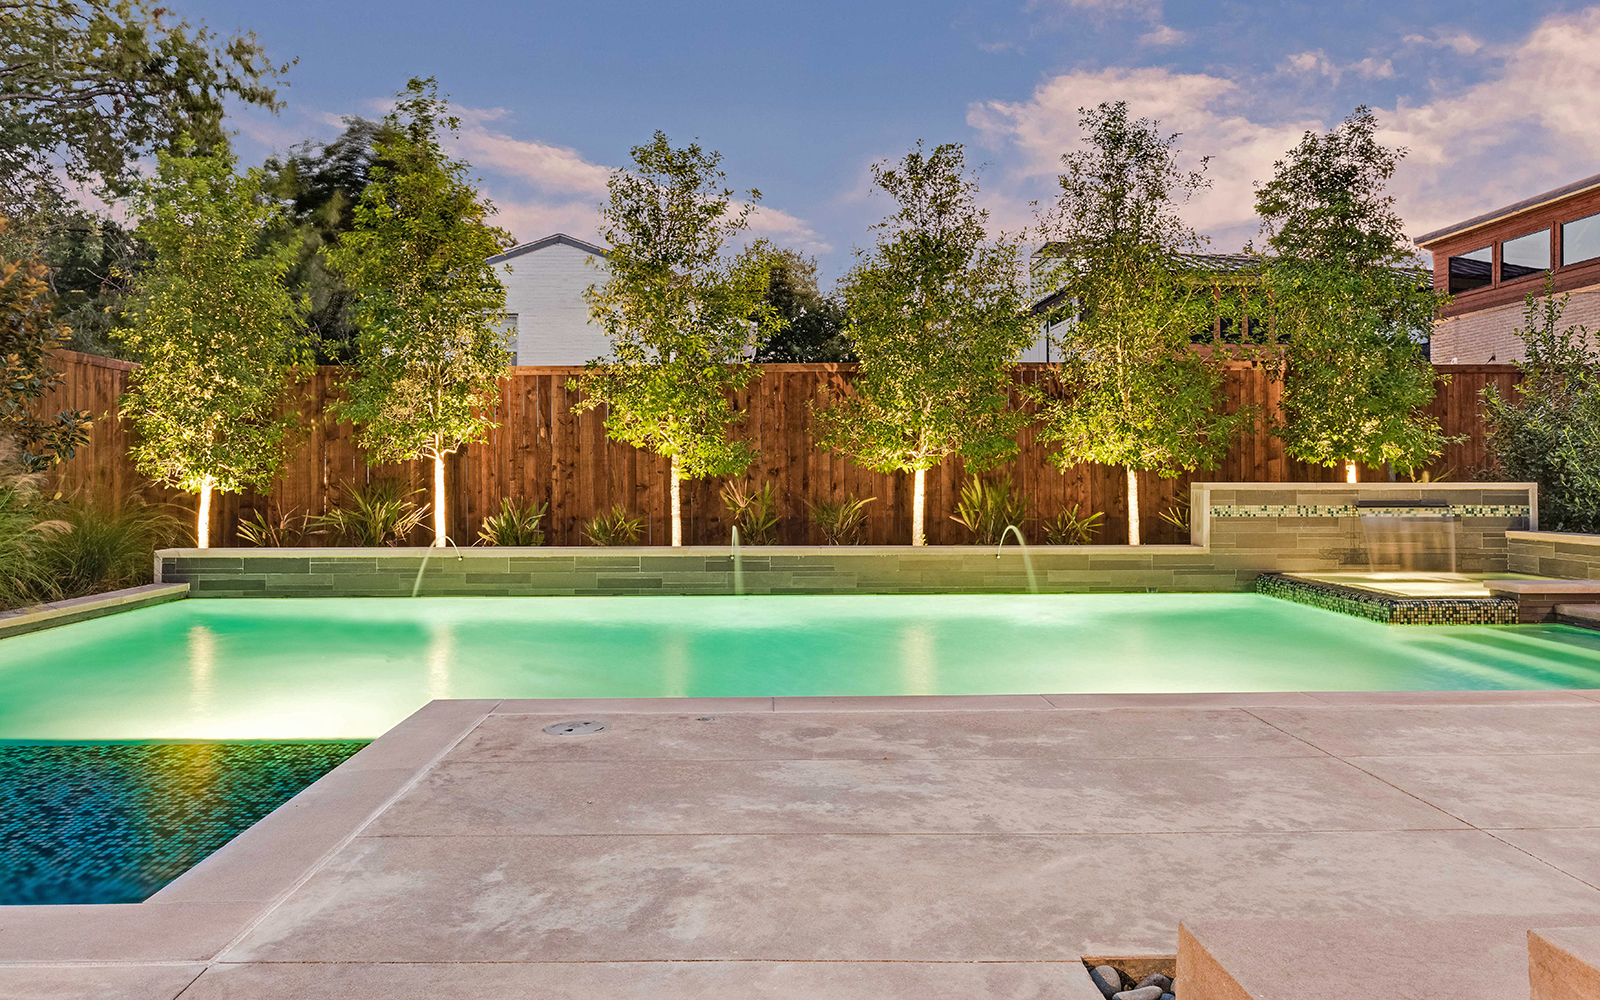 sunnyland-modern-pool-evening-terrace.jpg